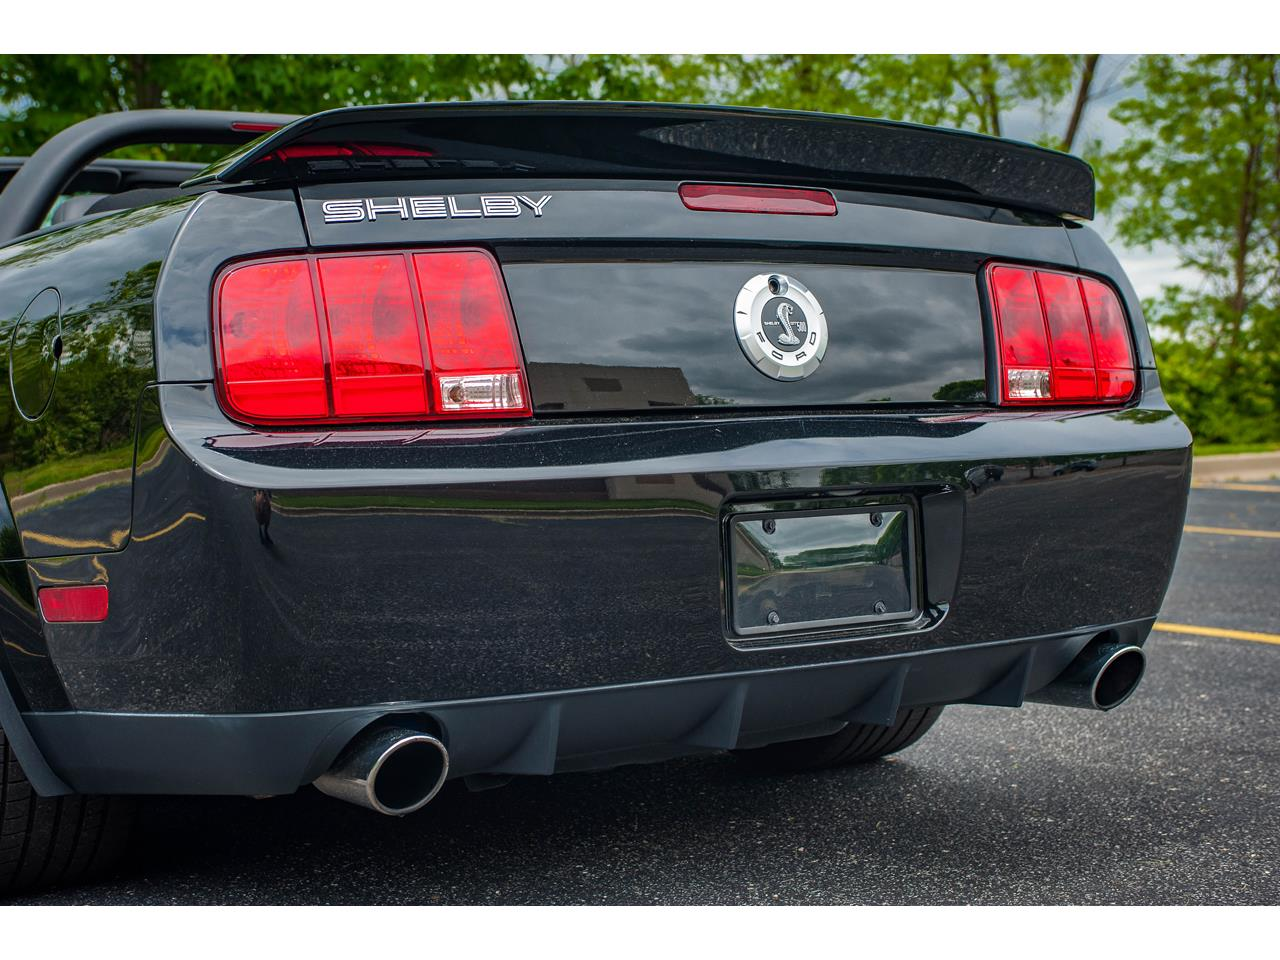 Large Picture of '07 Ford Mustang - $40,500.00 - QB98